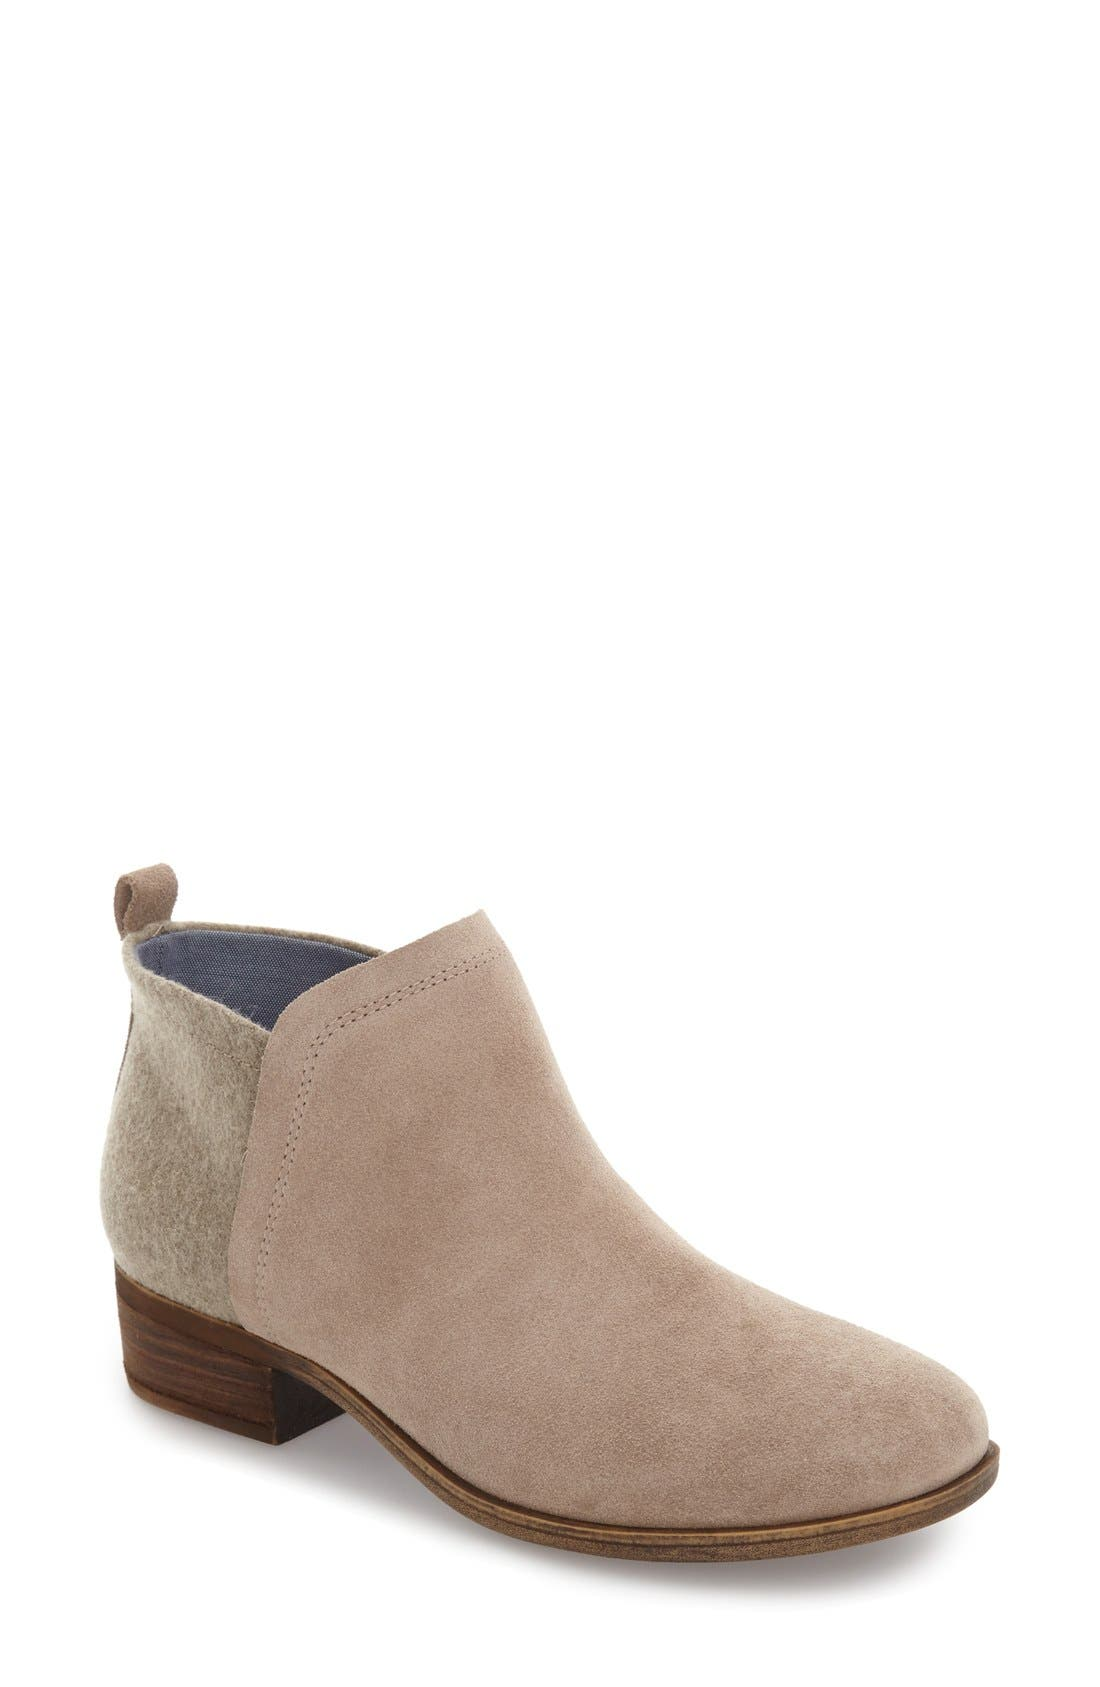 Deia Zip Bootie,                         Main,                         color, Natural Suede